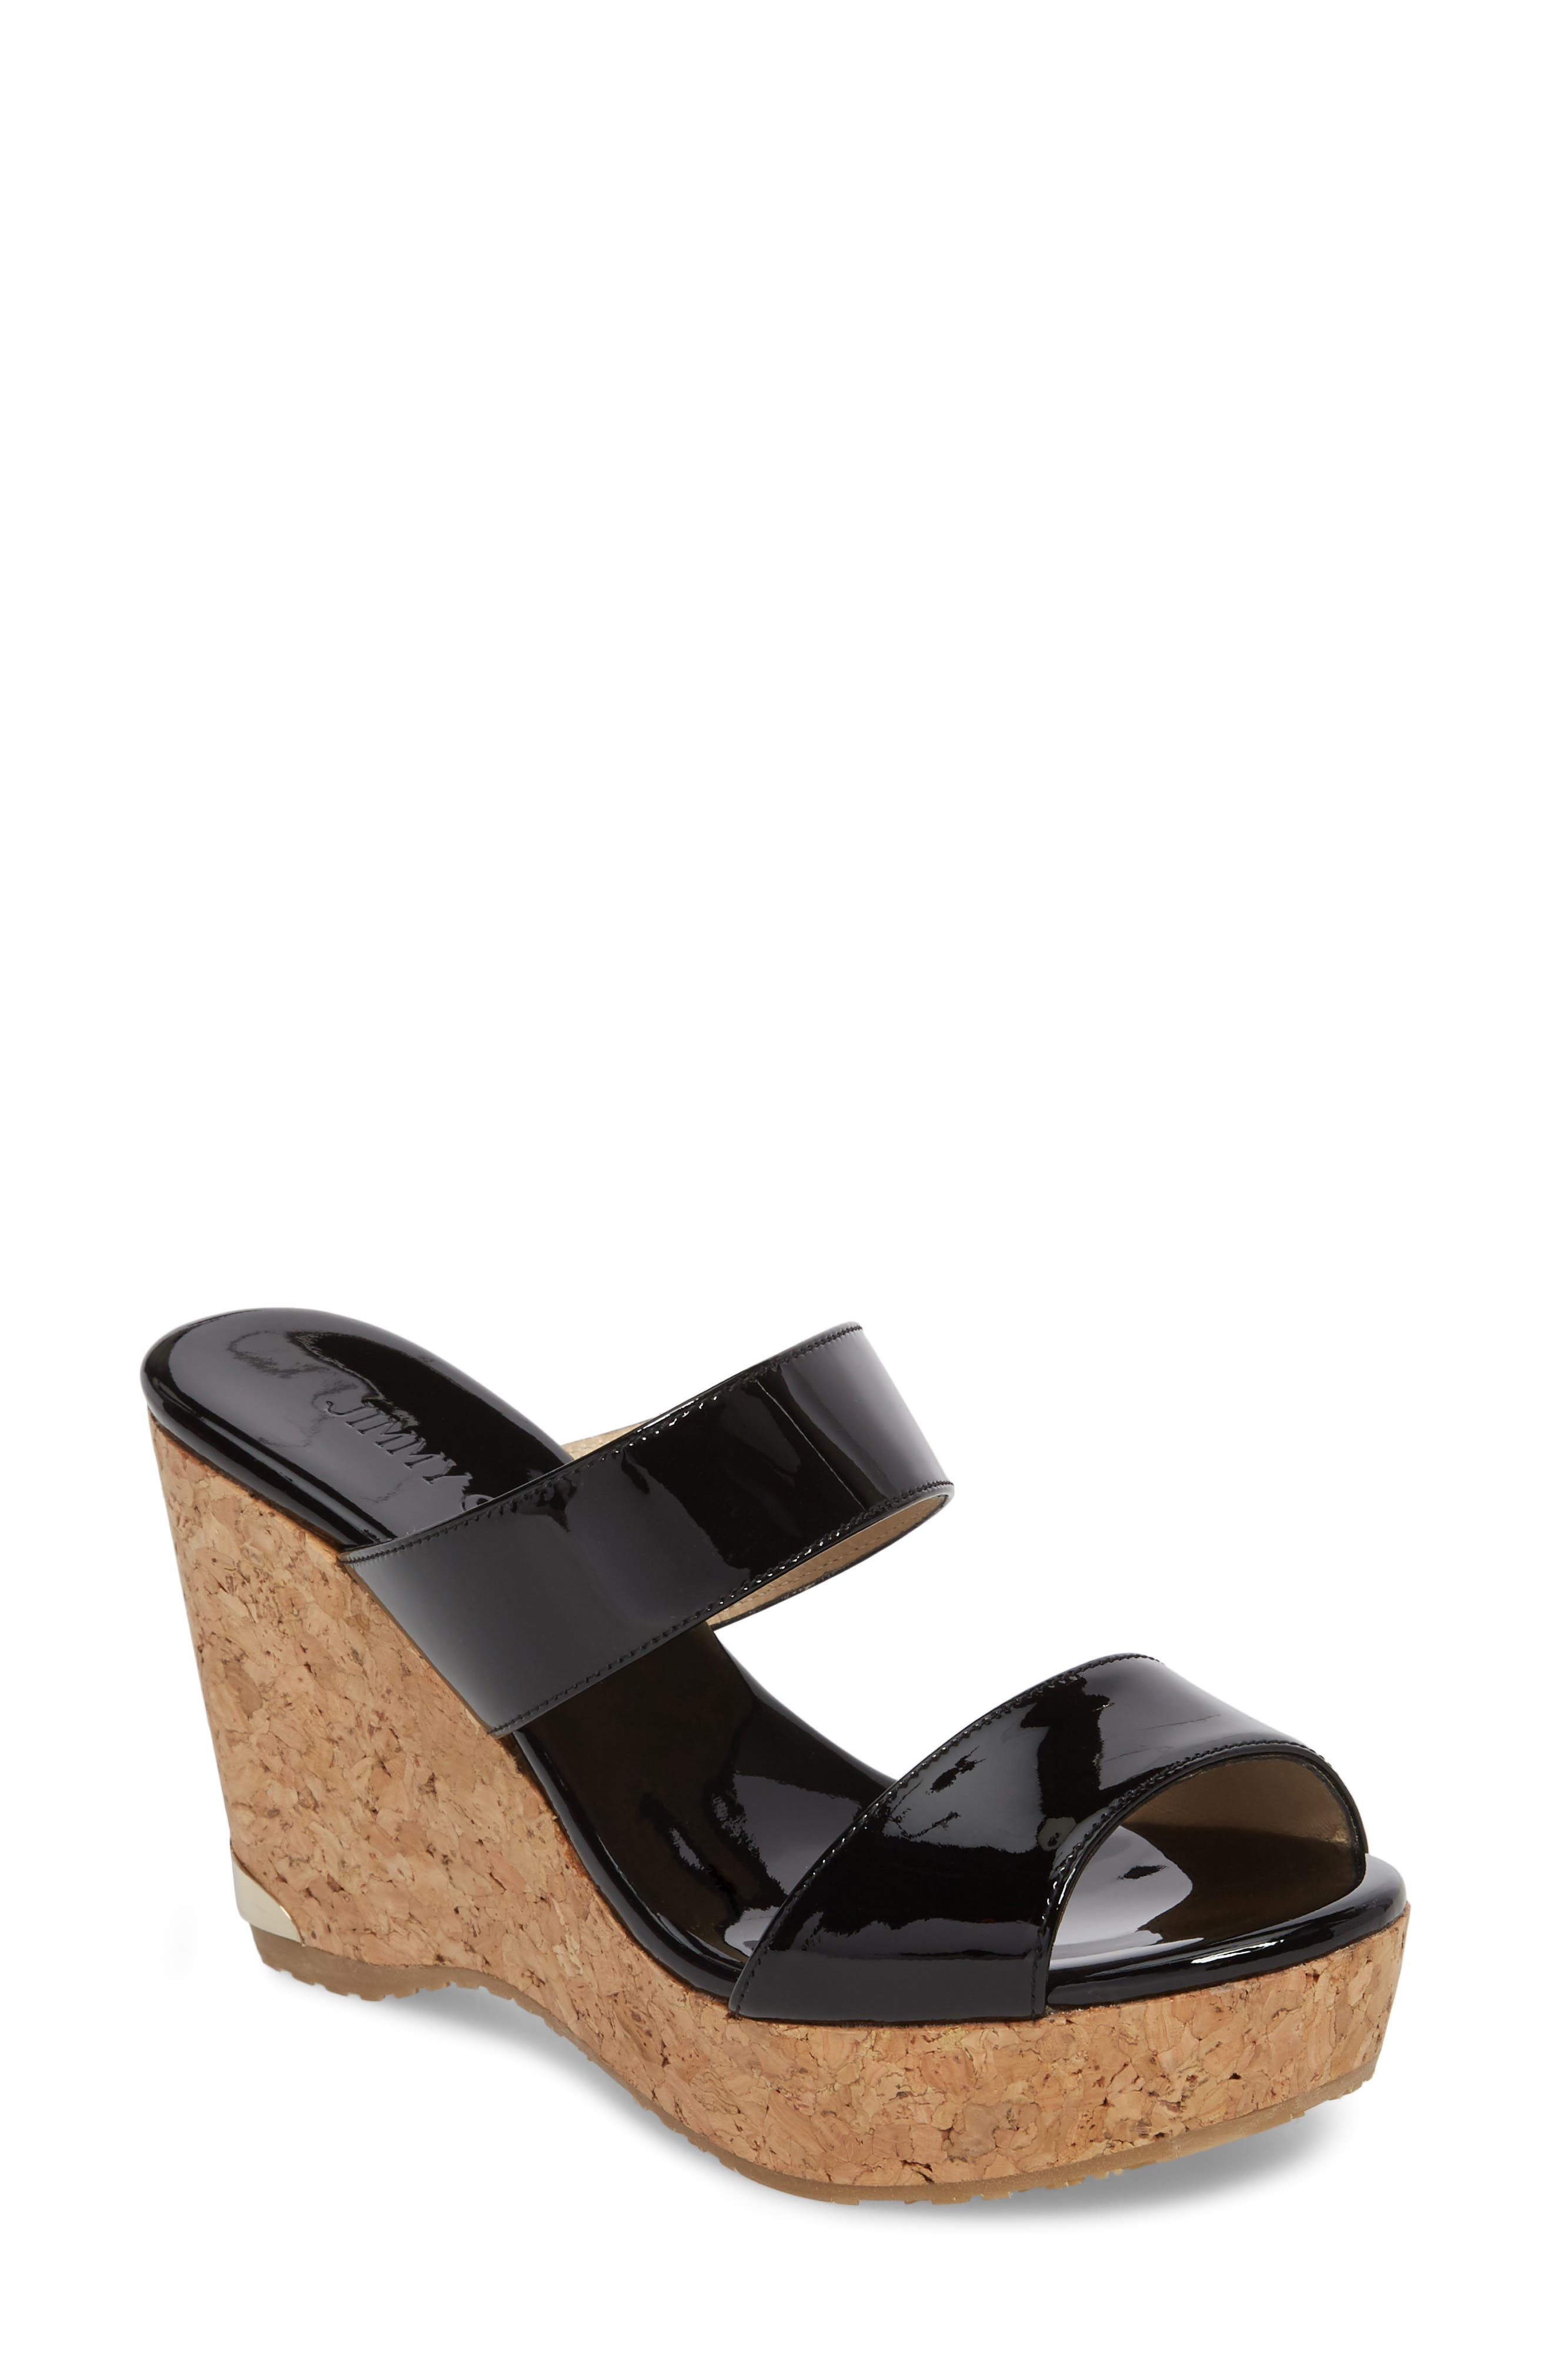 Parker Sandal,                             Main thumbnail 1, color,                             BLACK